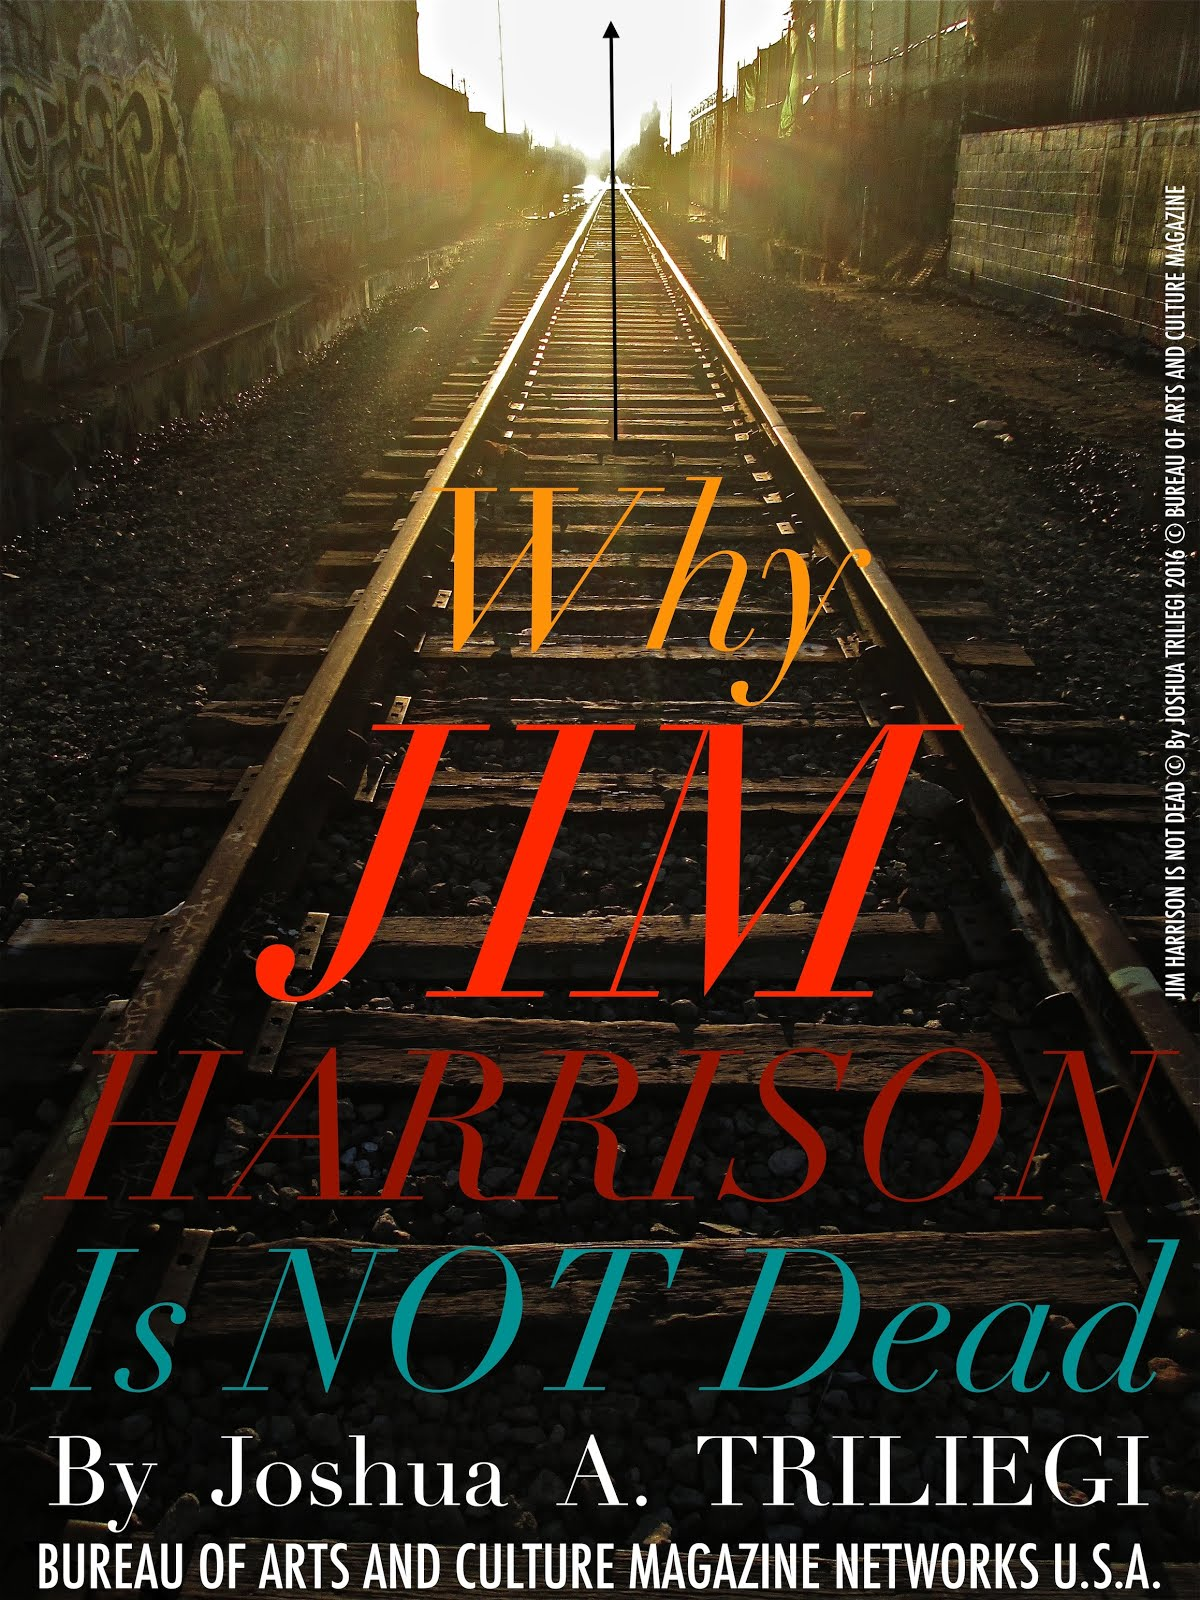 JIM HARRISON is NOT Dead